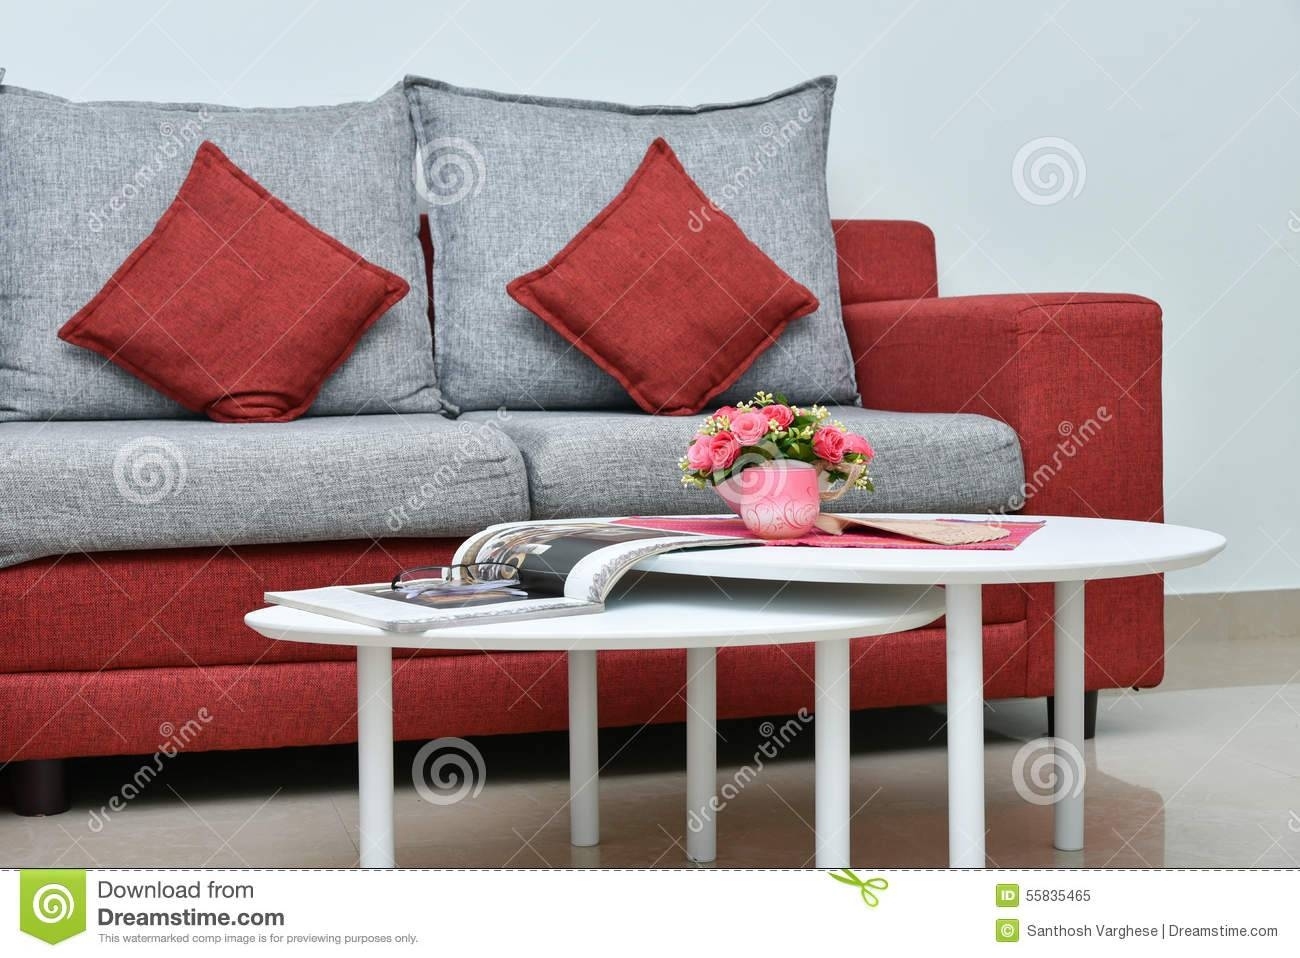 Modern Red And Grey Sofa In Living Room Interior Stock Photo regarding Red Sofa Tables (Image 3 of 15)